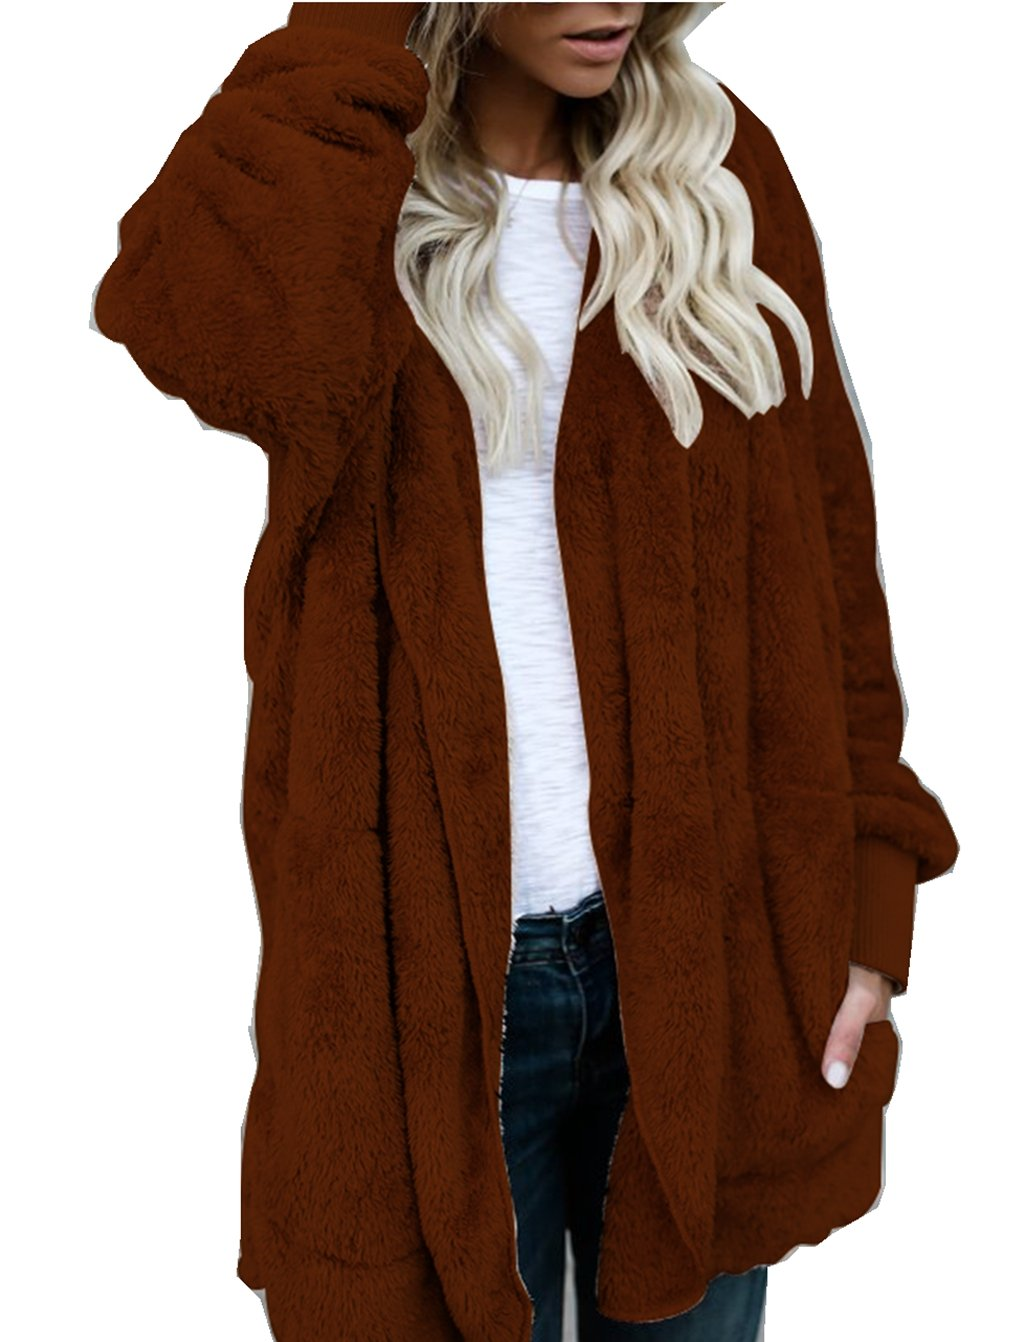 ASSKDAN Womens Fluffy Fuzzy Soft Open Front Hooded Cardigan Casual Long Sleeve Baggy Warm Long Jacket Coat Jumpers Outwear(S-XXL)